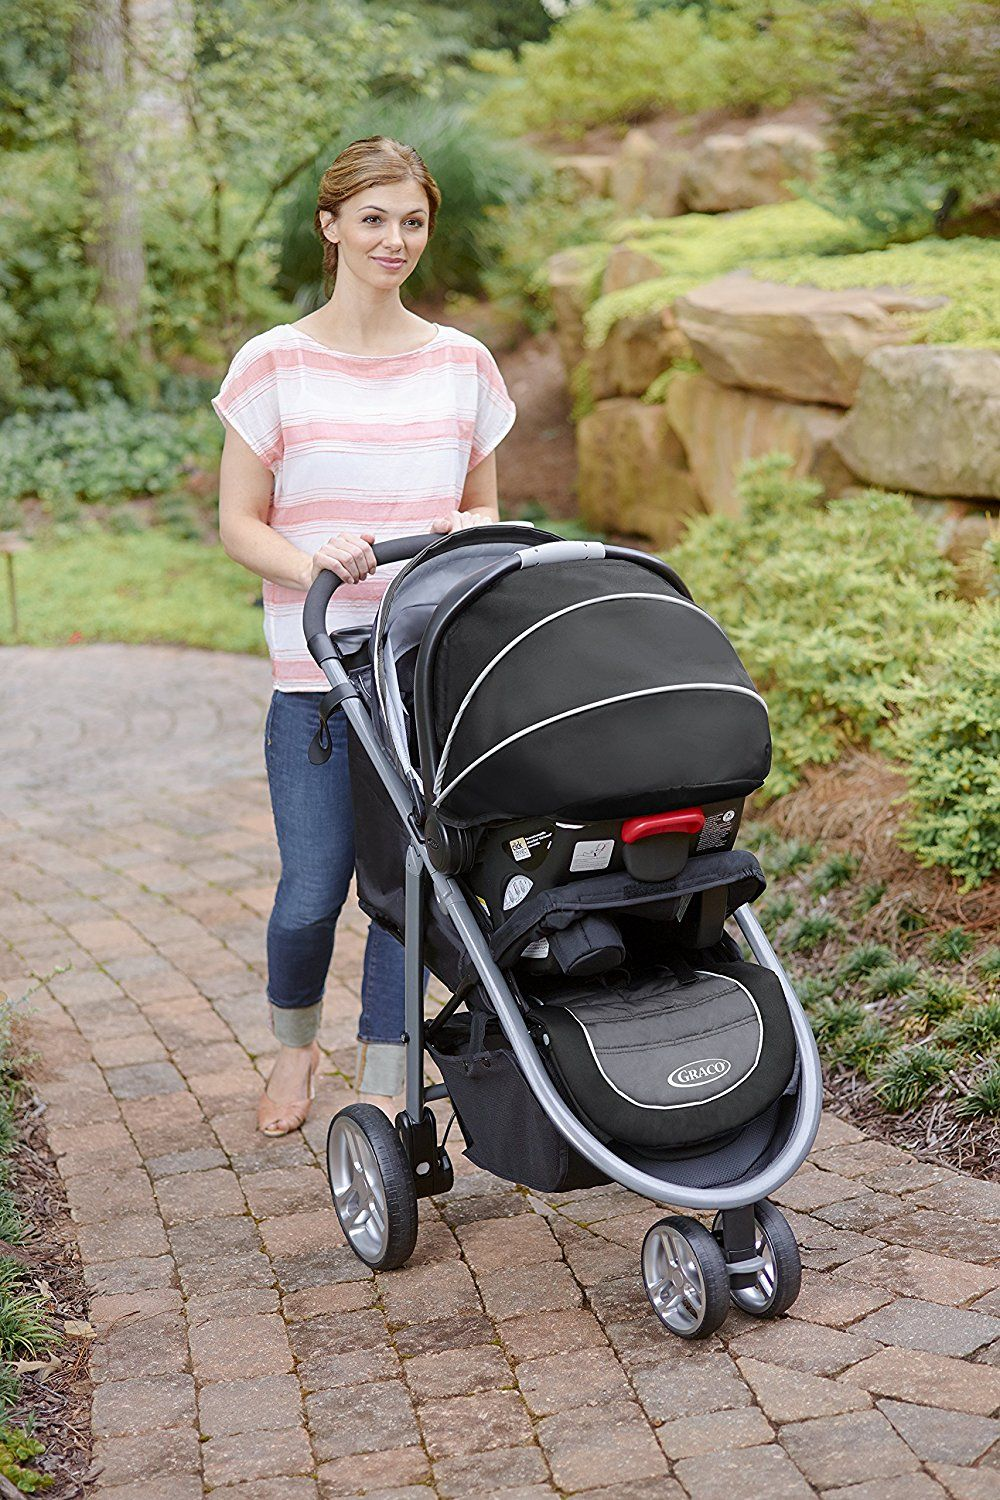 Amazon.com : Graco Aire3 Click Connect Travel System ...